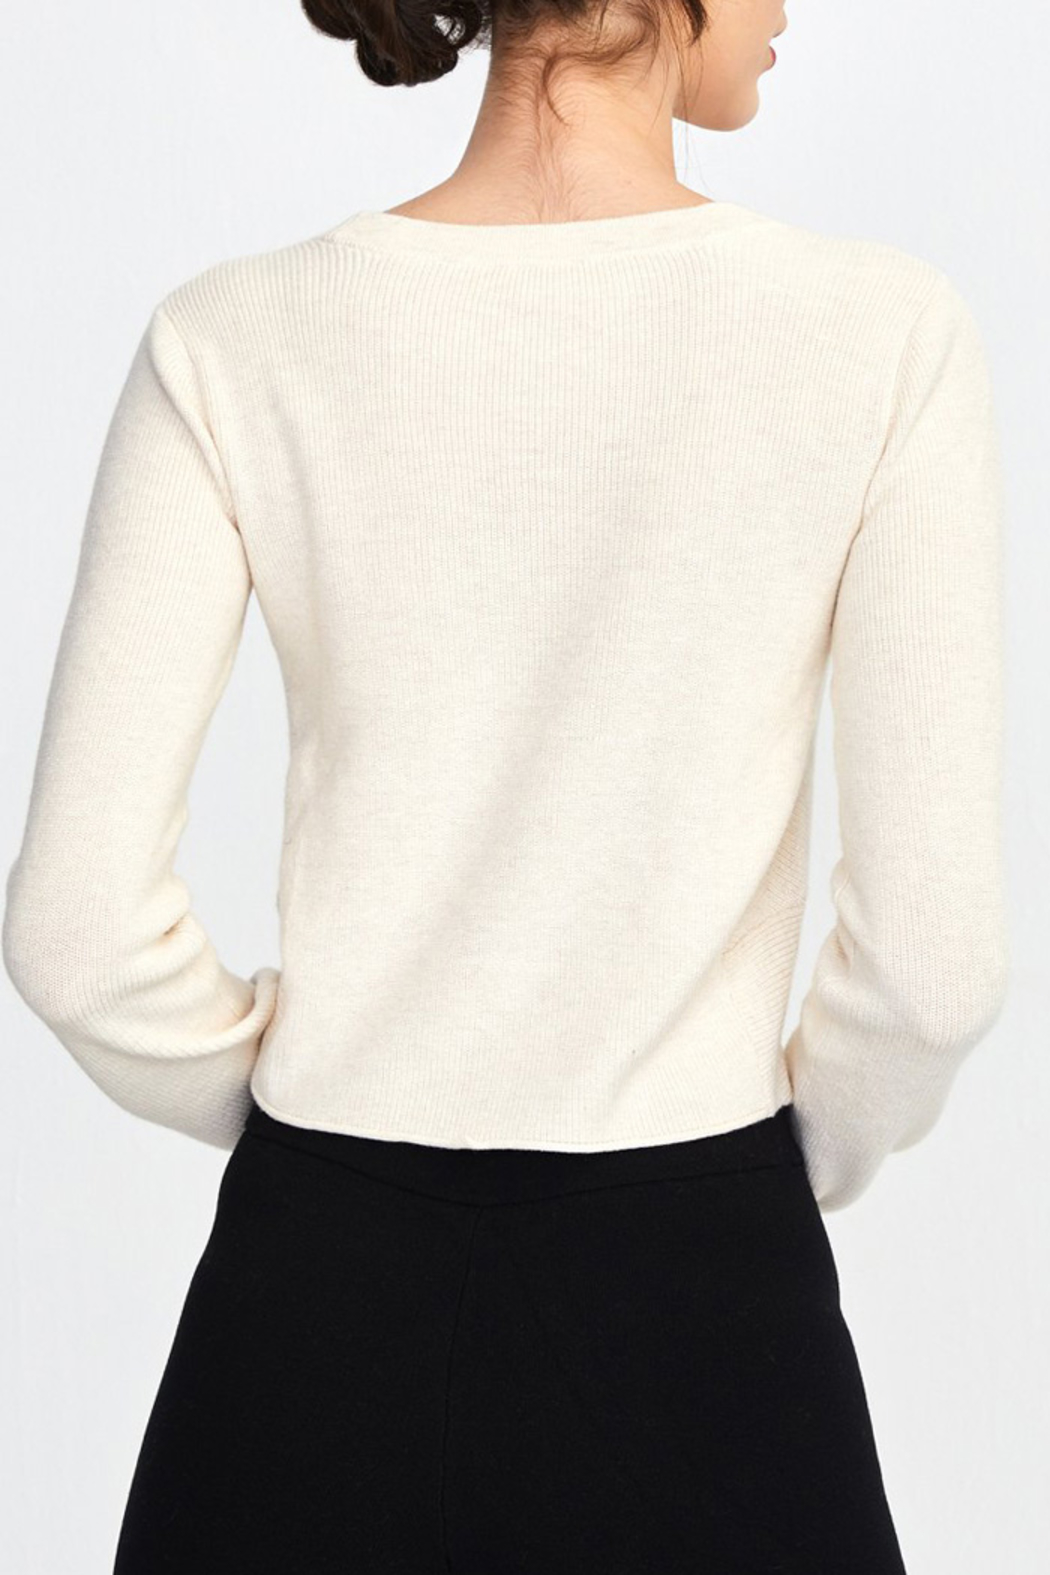 525 America TWIST TOP SWEATER PULLOVER - Front Full Image